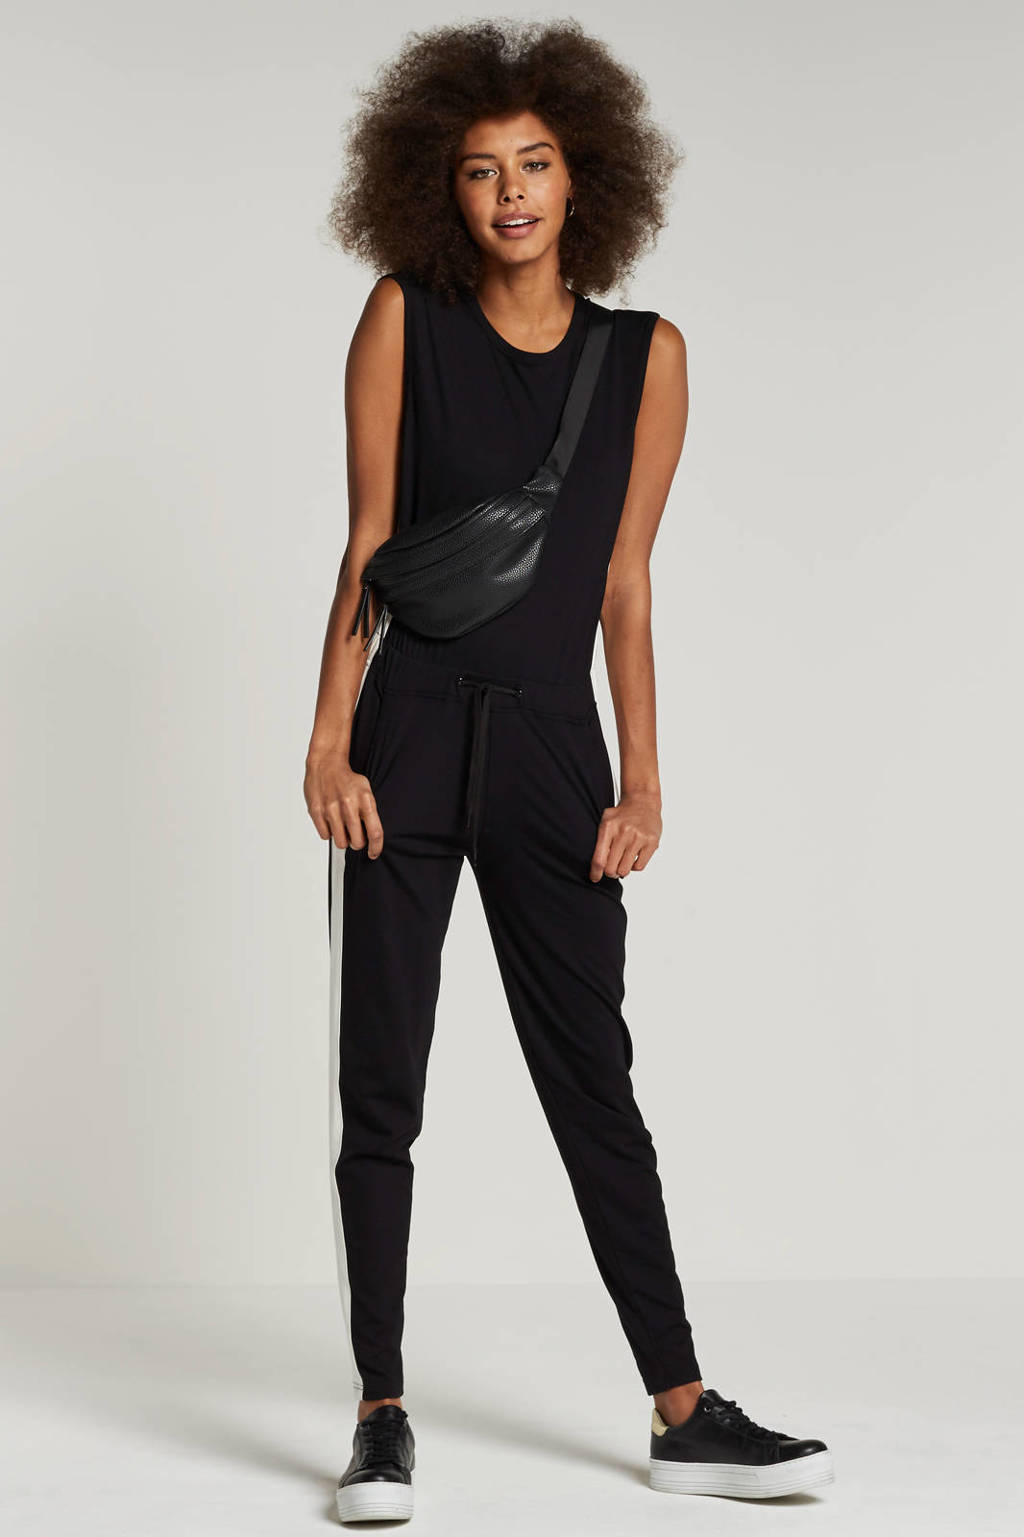 a9e5cd323d43 G-Star RAW Dundja jumpsuit met zijbies